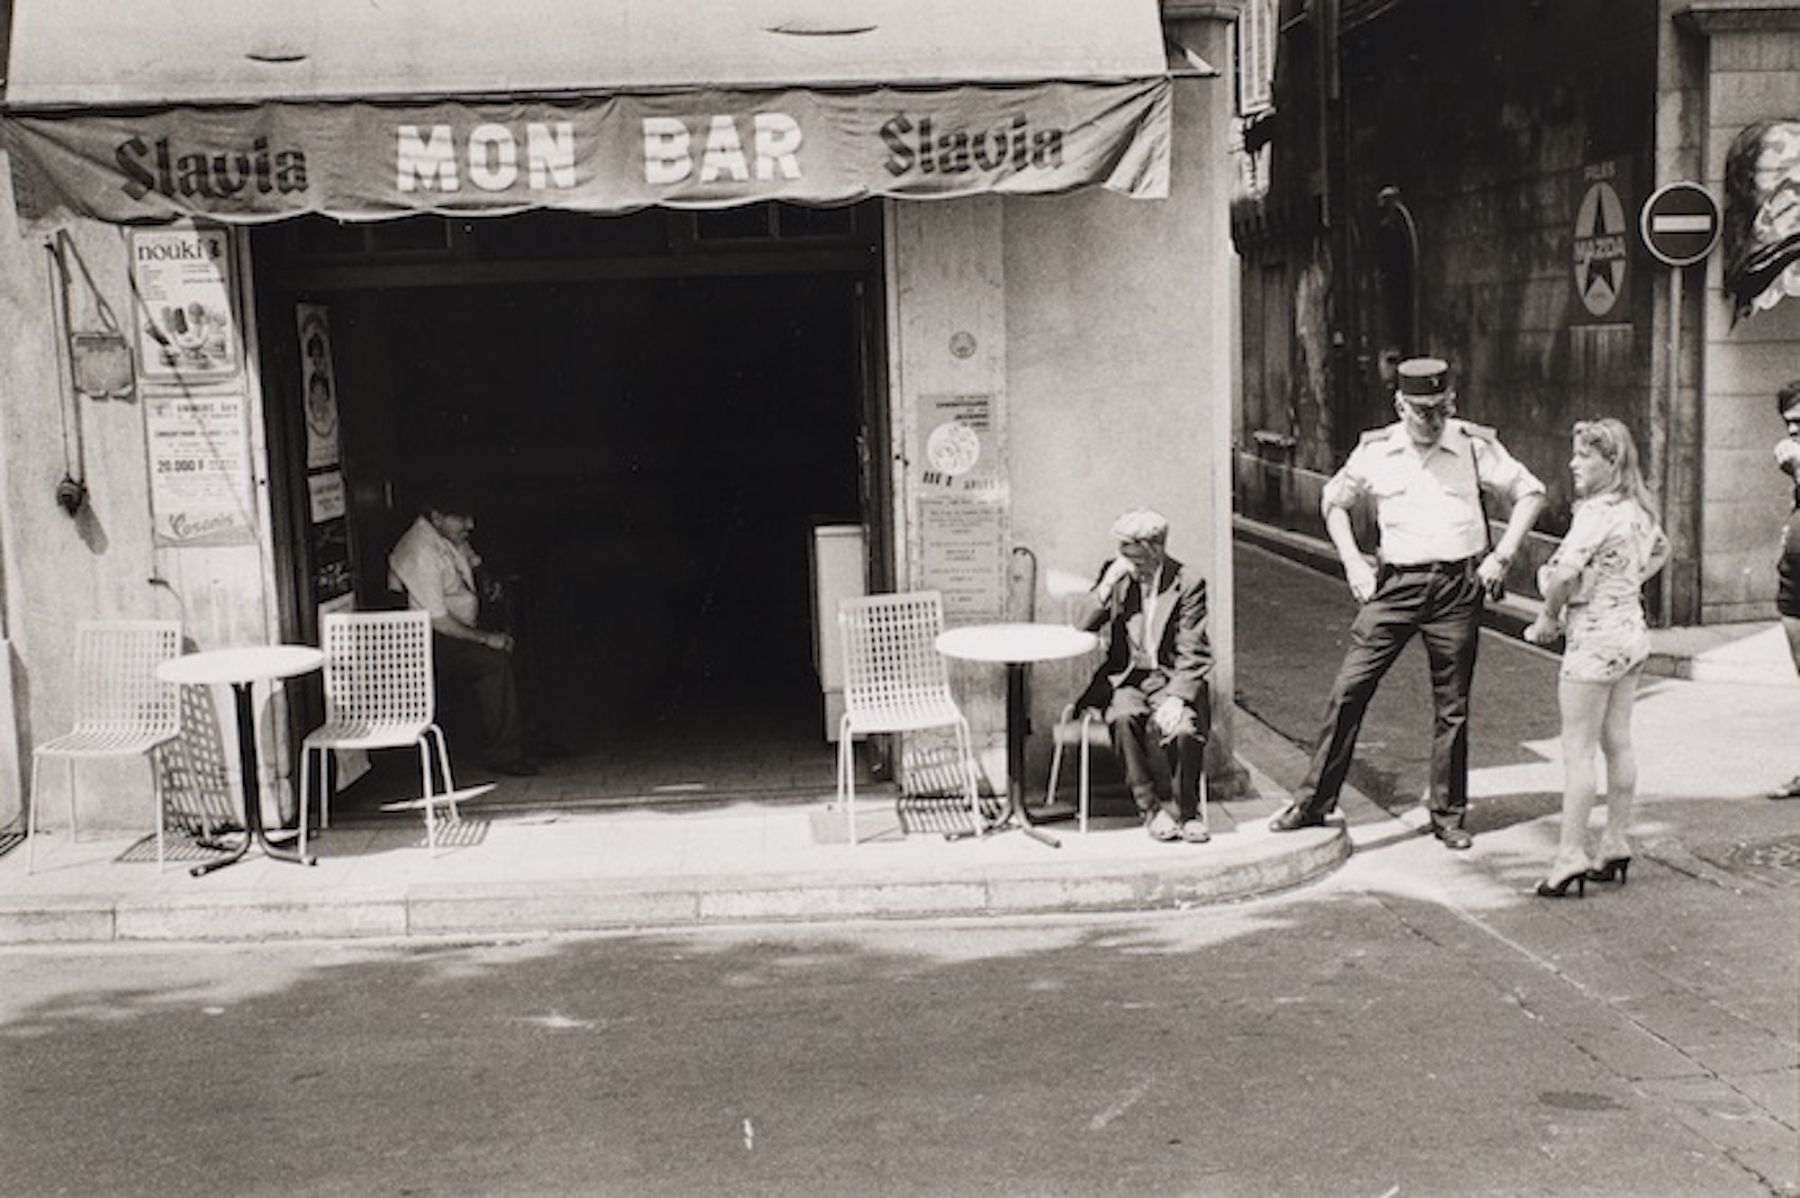 Philippe Salaun (1943-)  Arles, 1982  Gold toned gelatin silver print  12 x 16 inches (paper), black and white photography